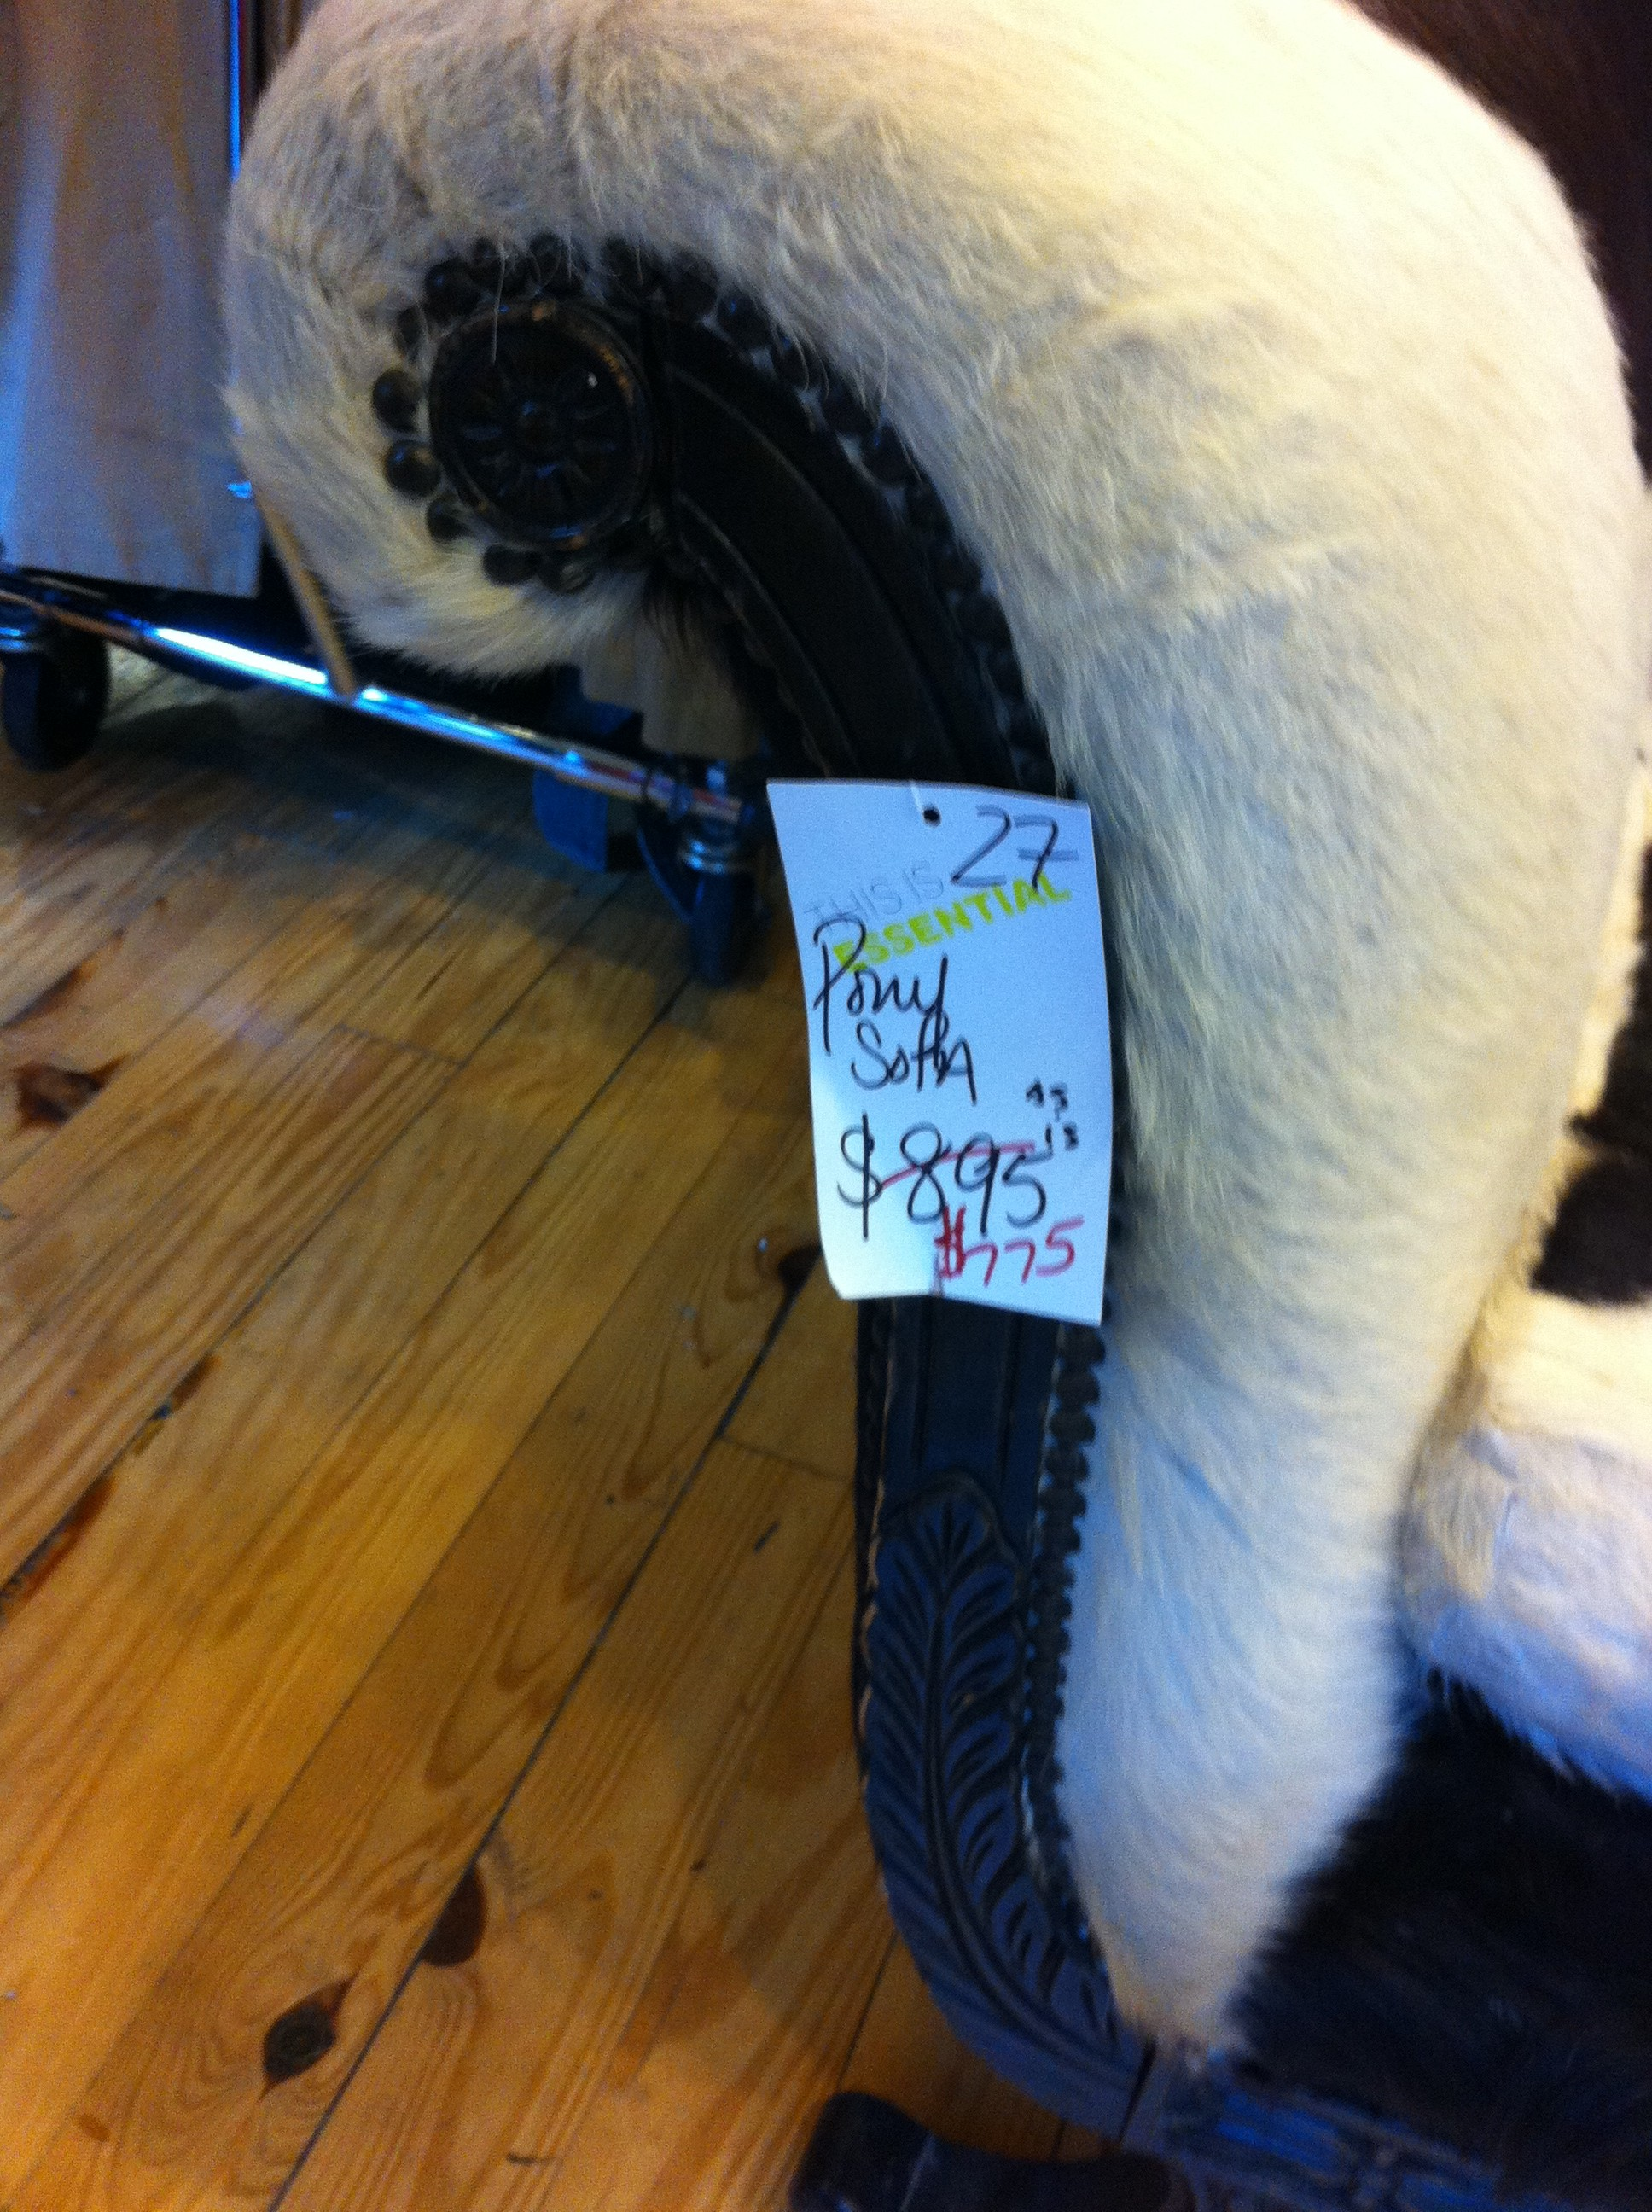 A tight pic of the sales tag for a vintage pony covered settee in thrift store